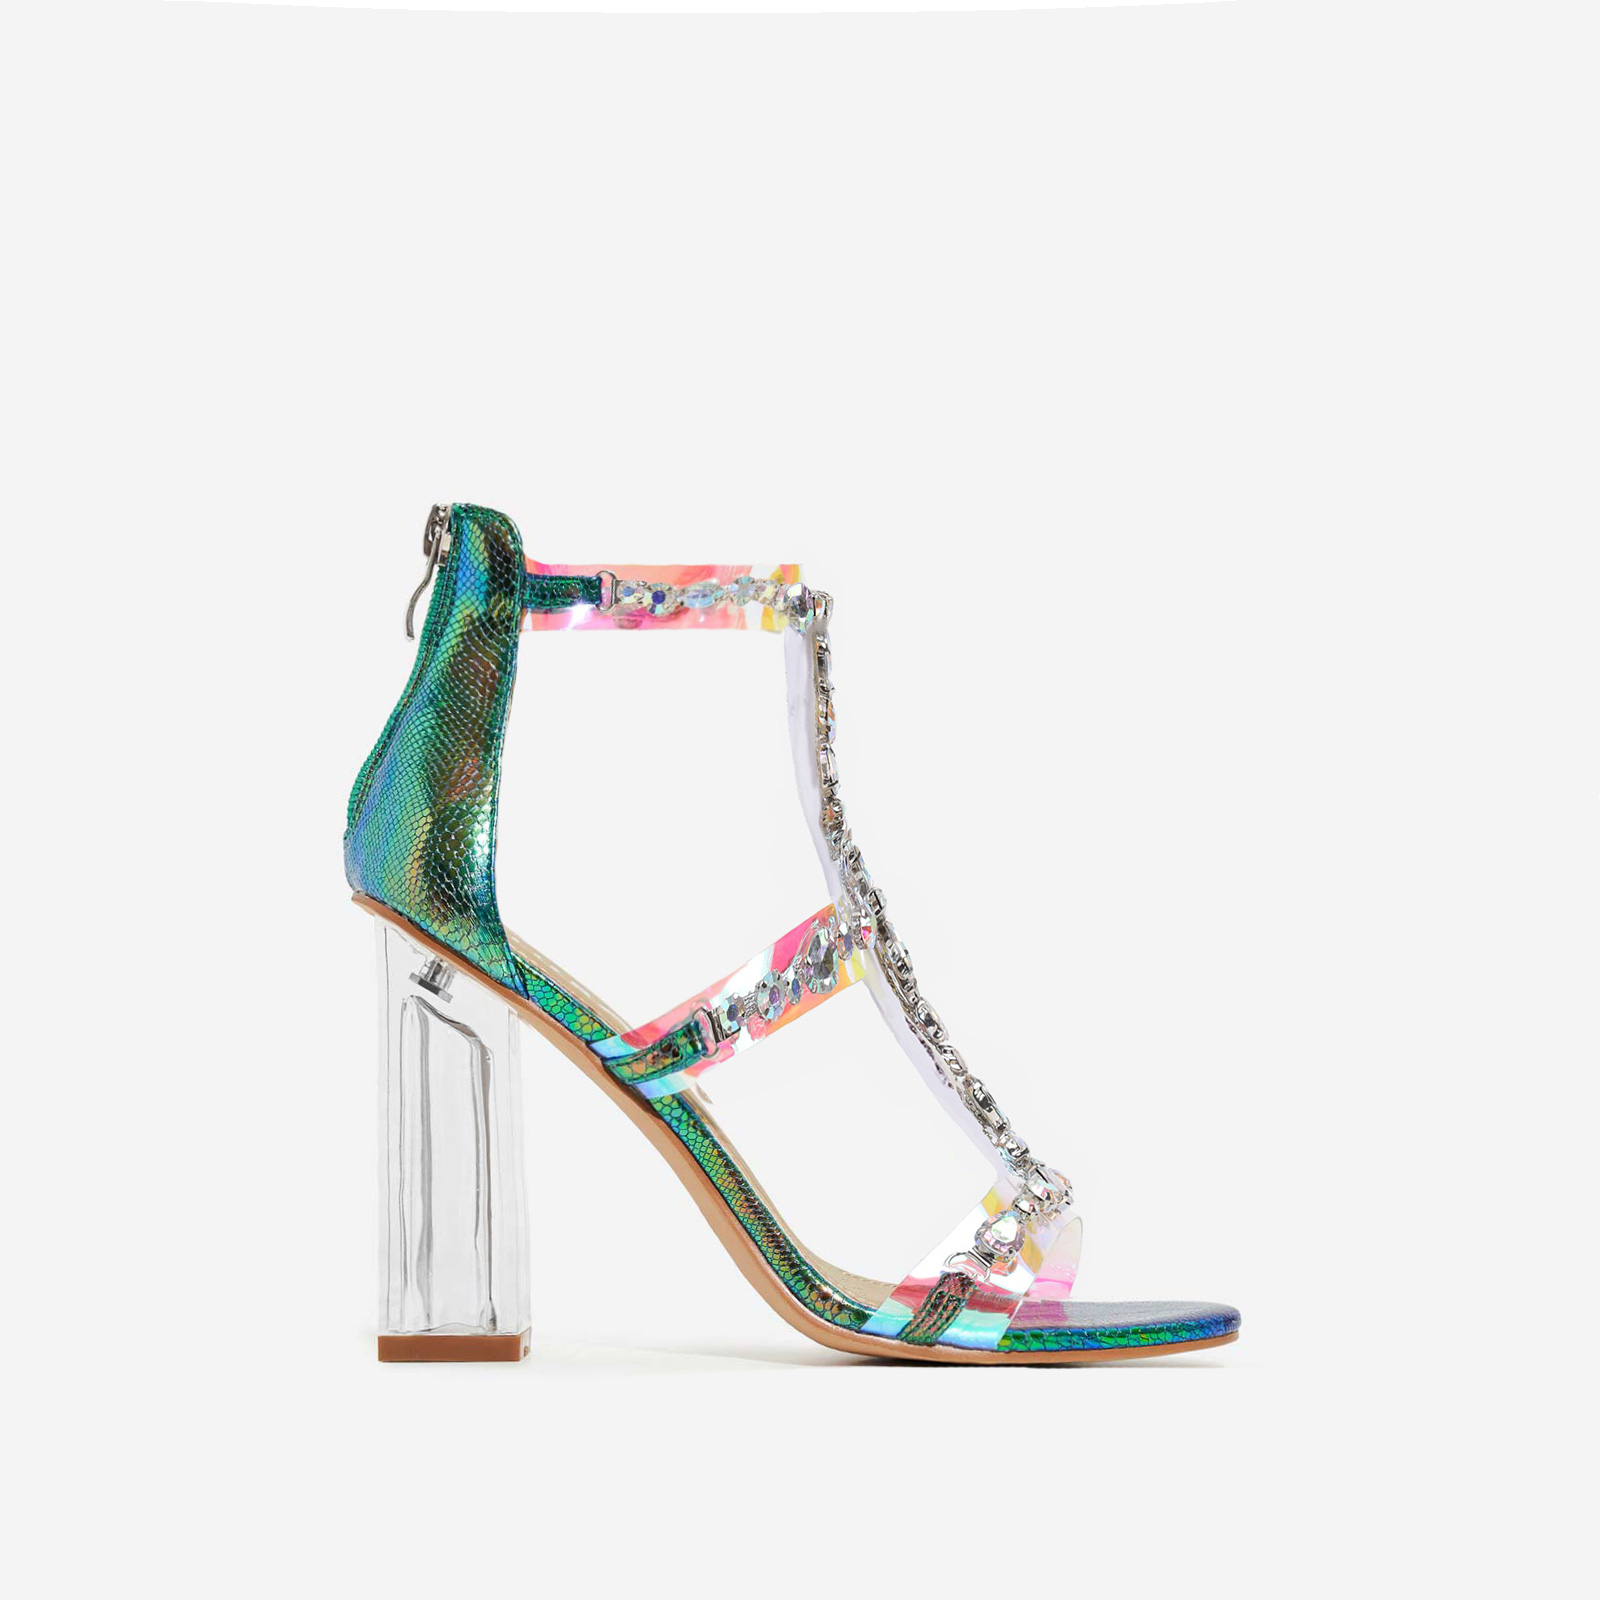 Merryme Jewel Embellished Perspex Block Heel In Green Holographic Snake Print Faux Leather